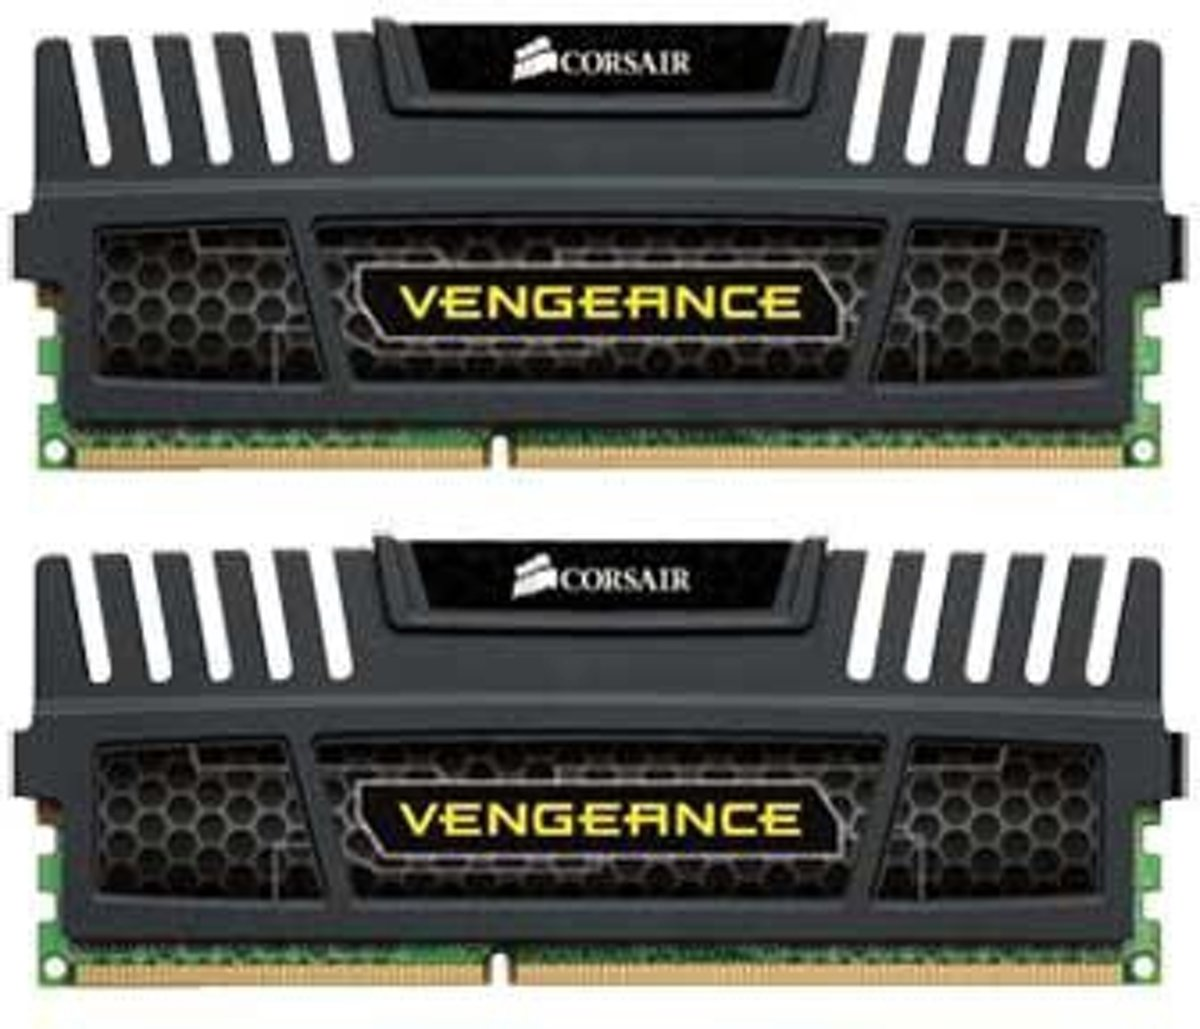 Vengeance 16GB DDR3 1600MHz (2 x 8 GB)